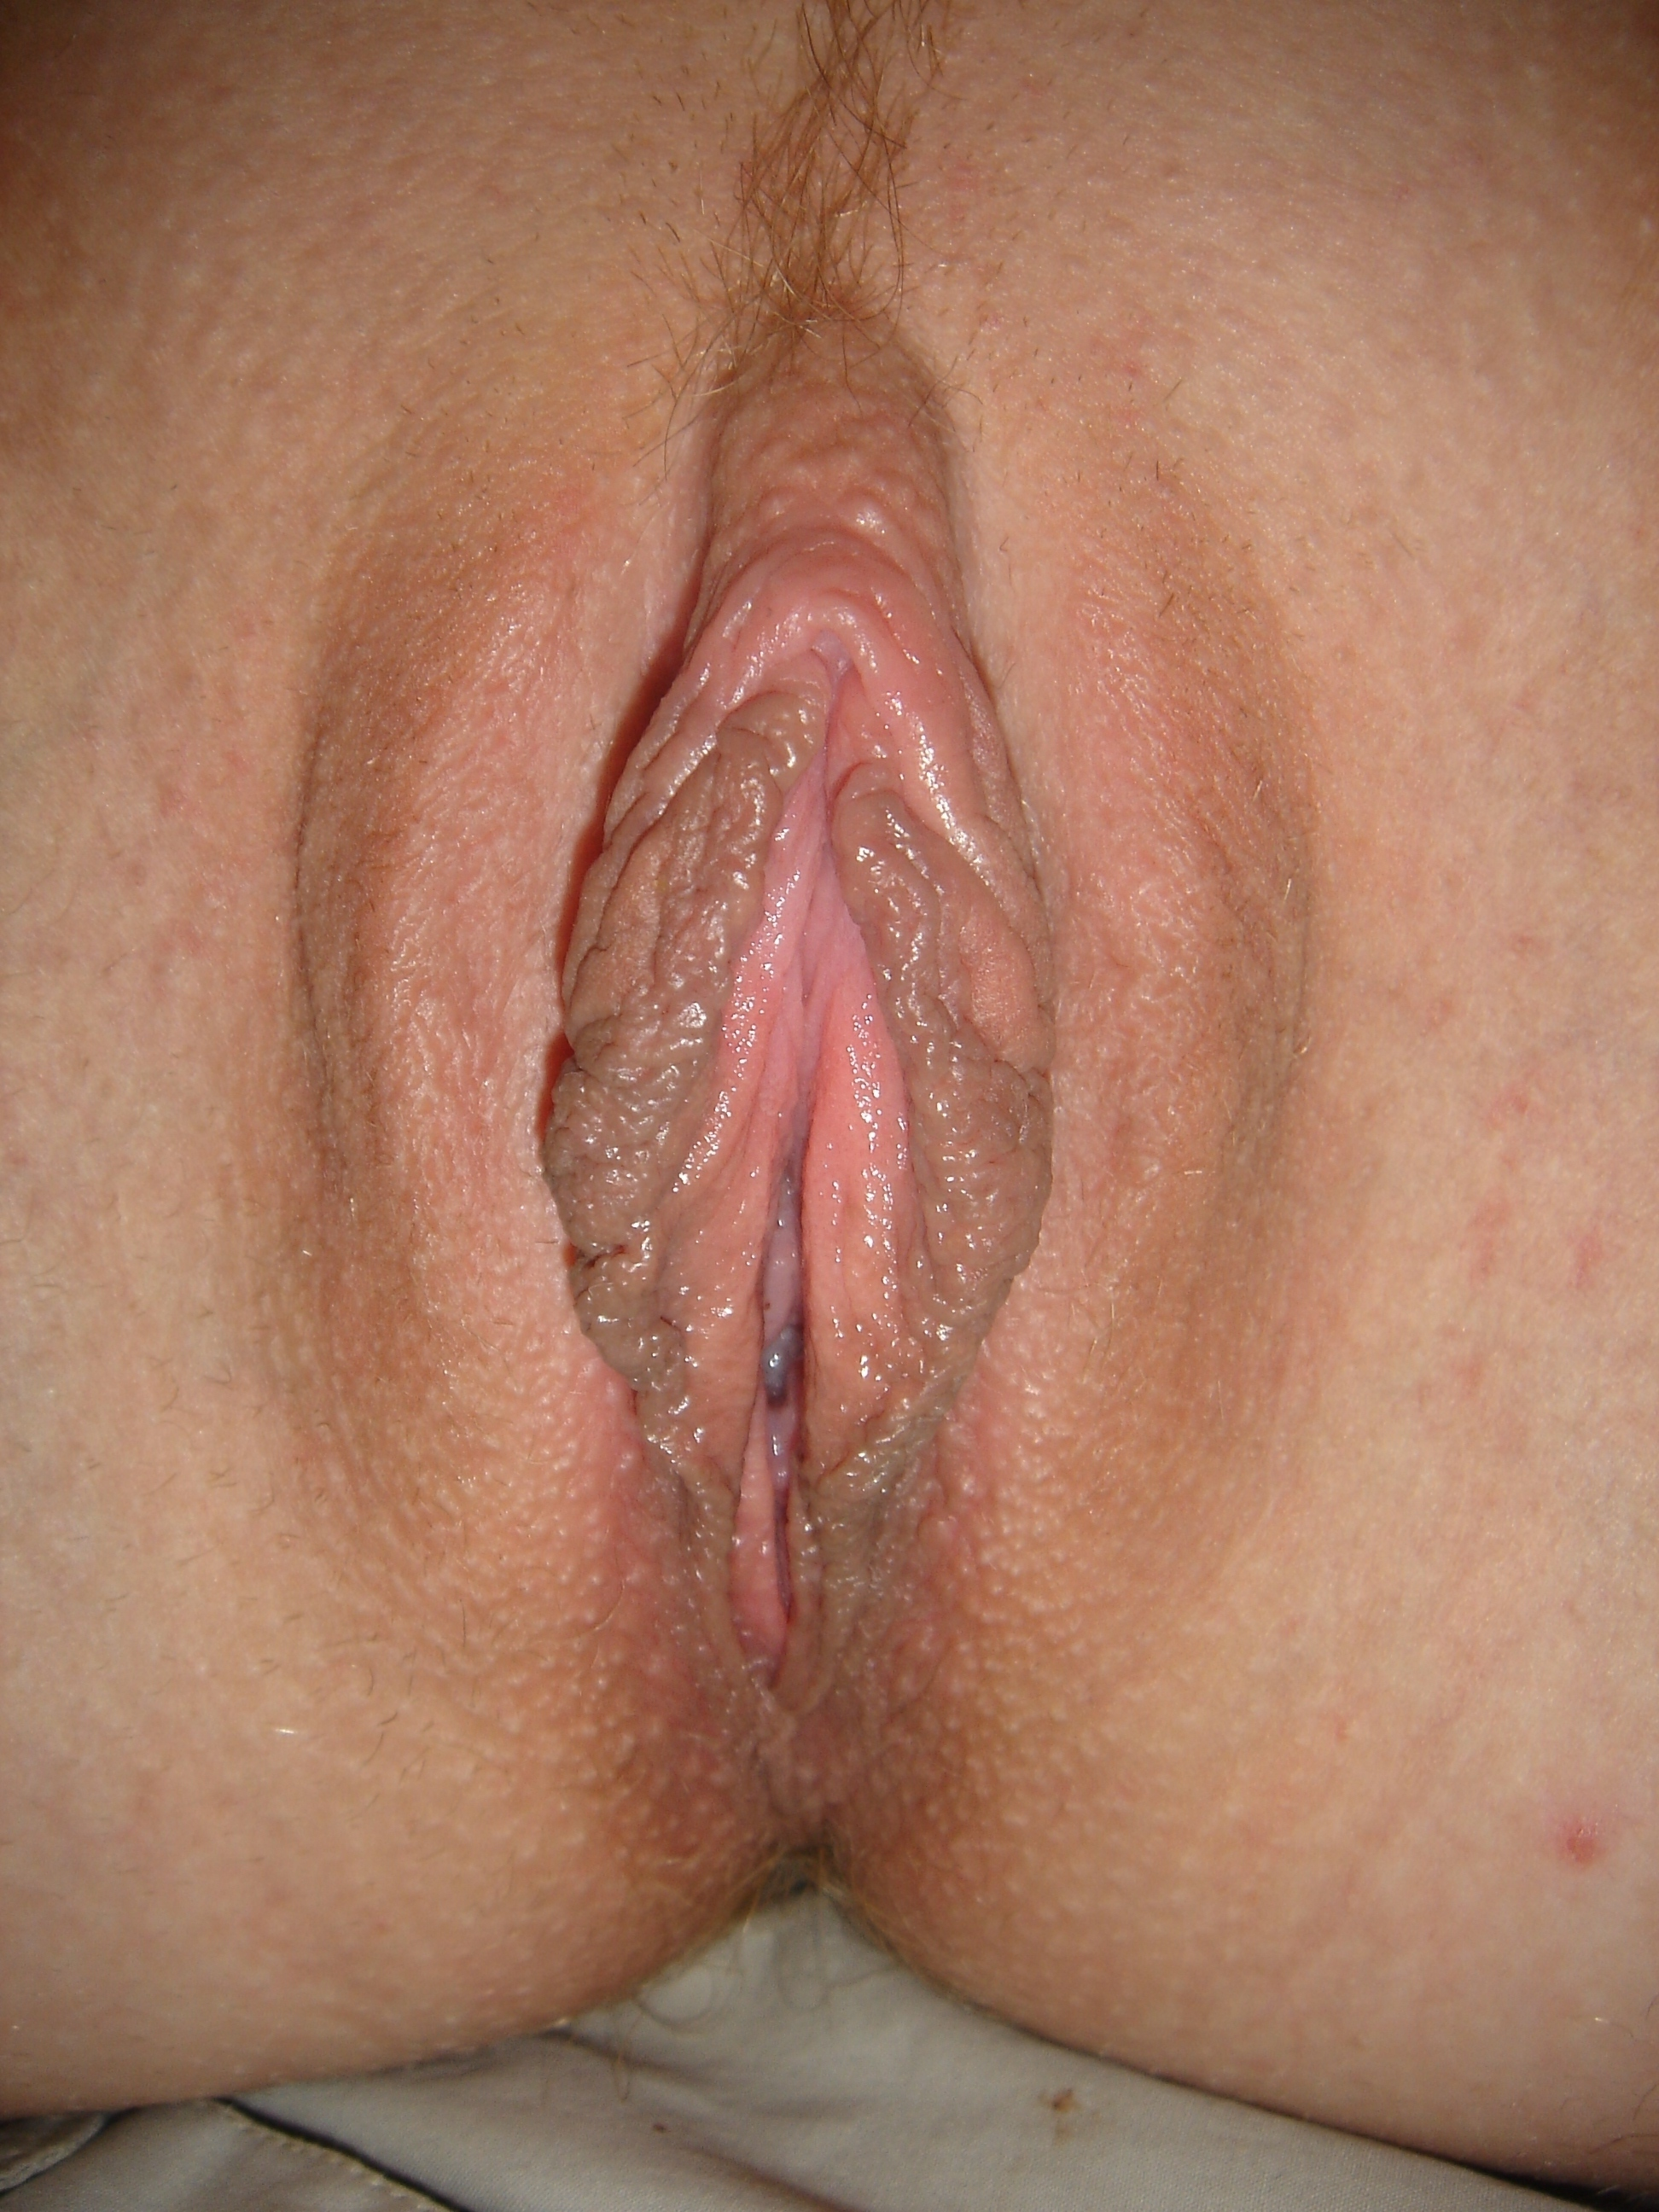 Up pussy open close spread vagina